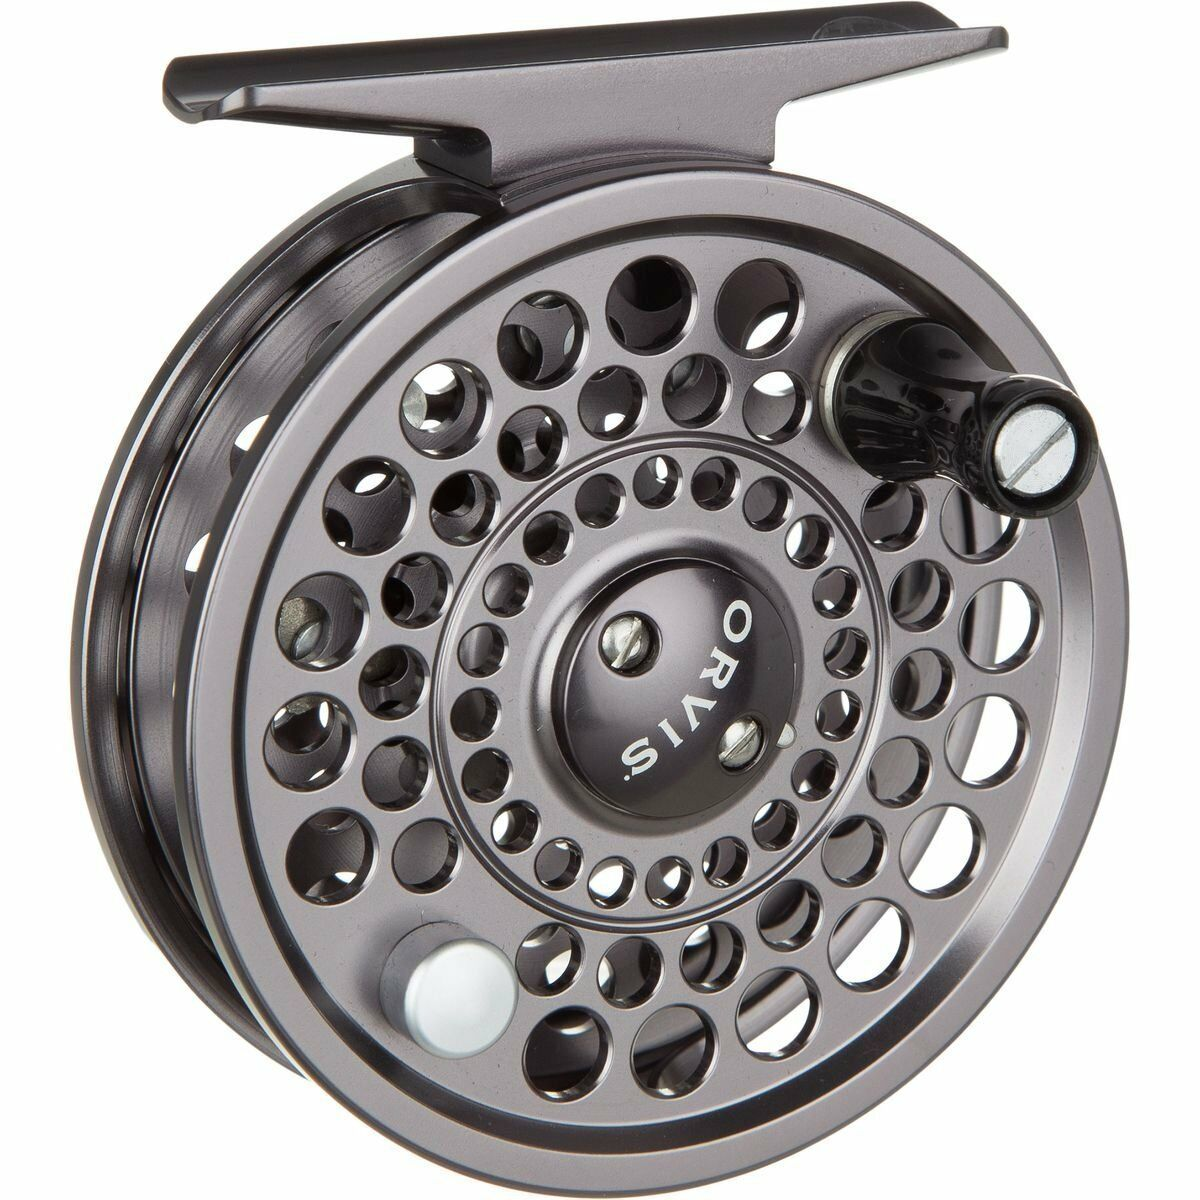 Orvis  Battenkill I Fly Reel  fast shipping and best service